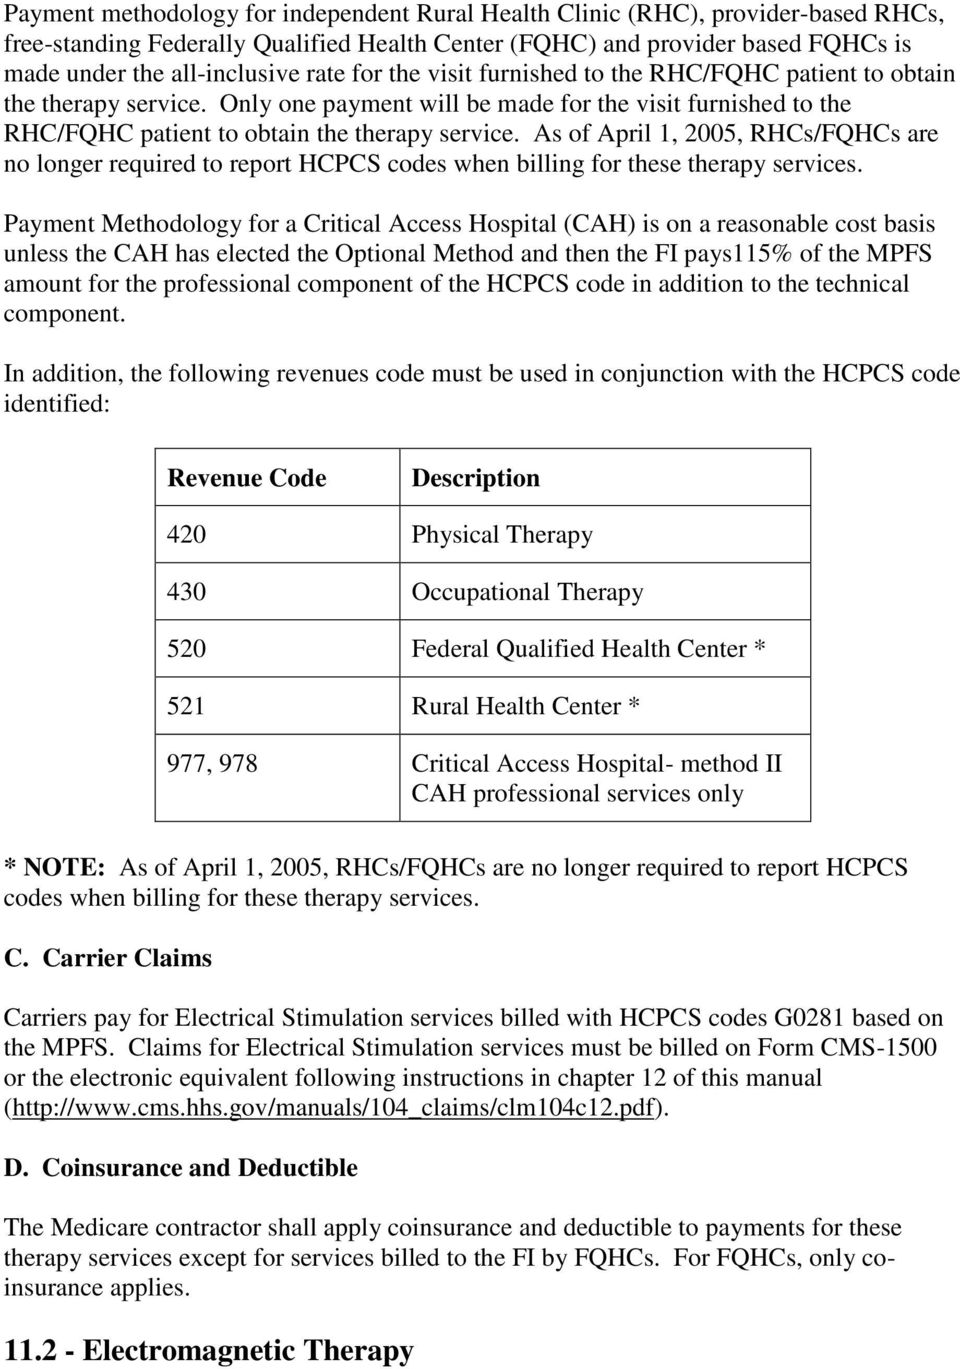 As of April 1, 2005, RHCs/FQHCs are no longer required to report